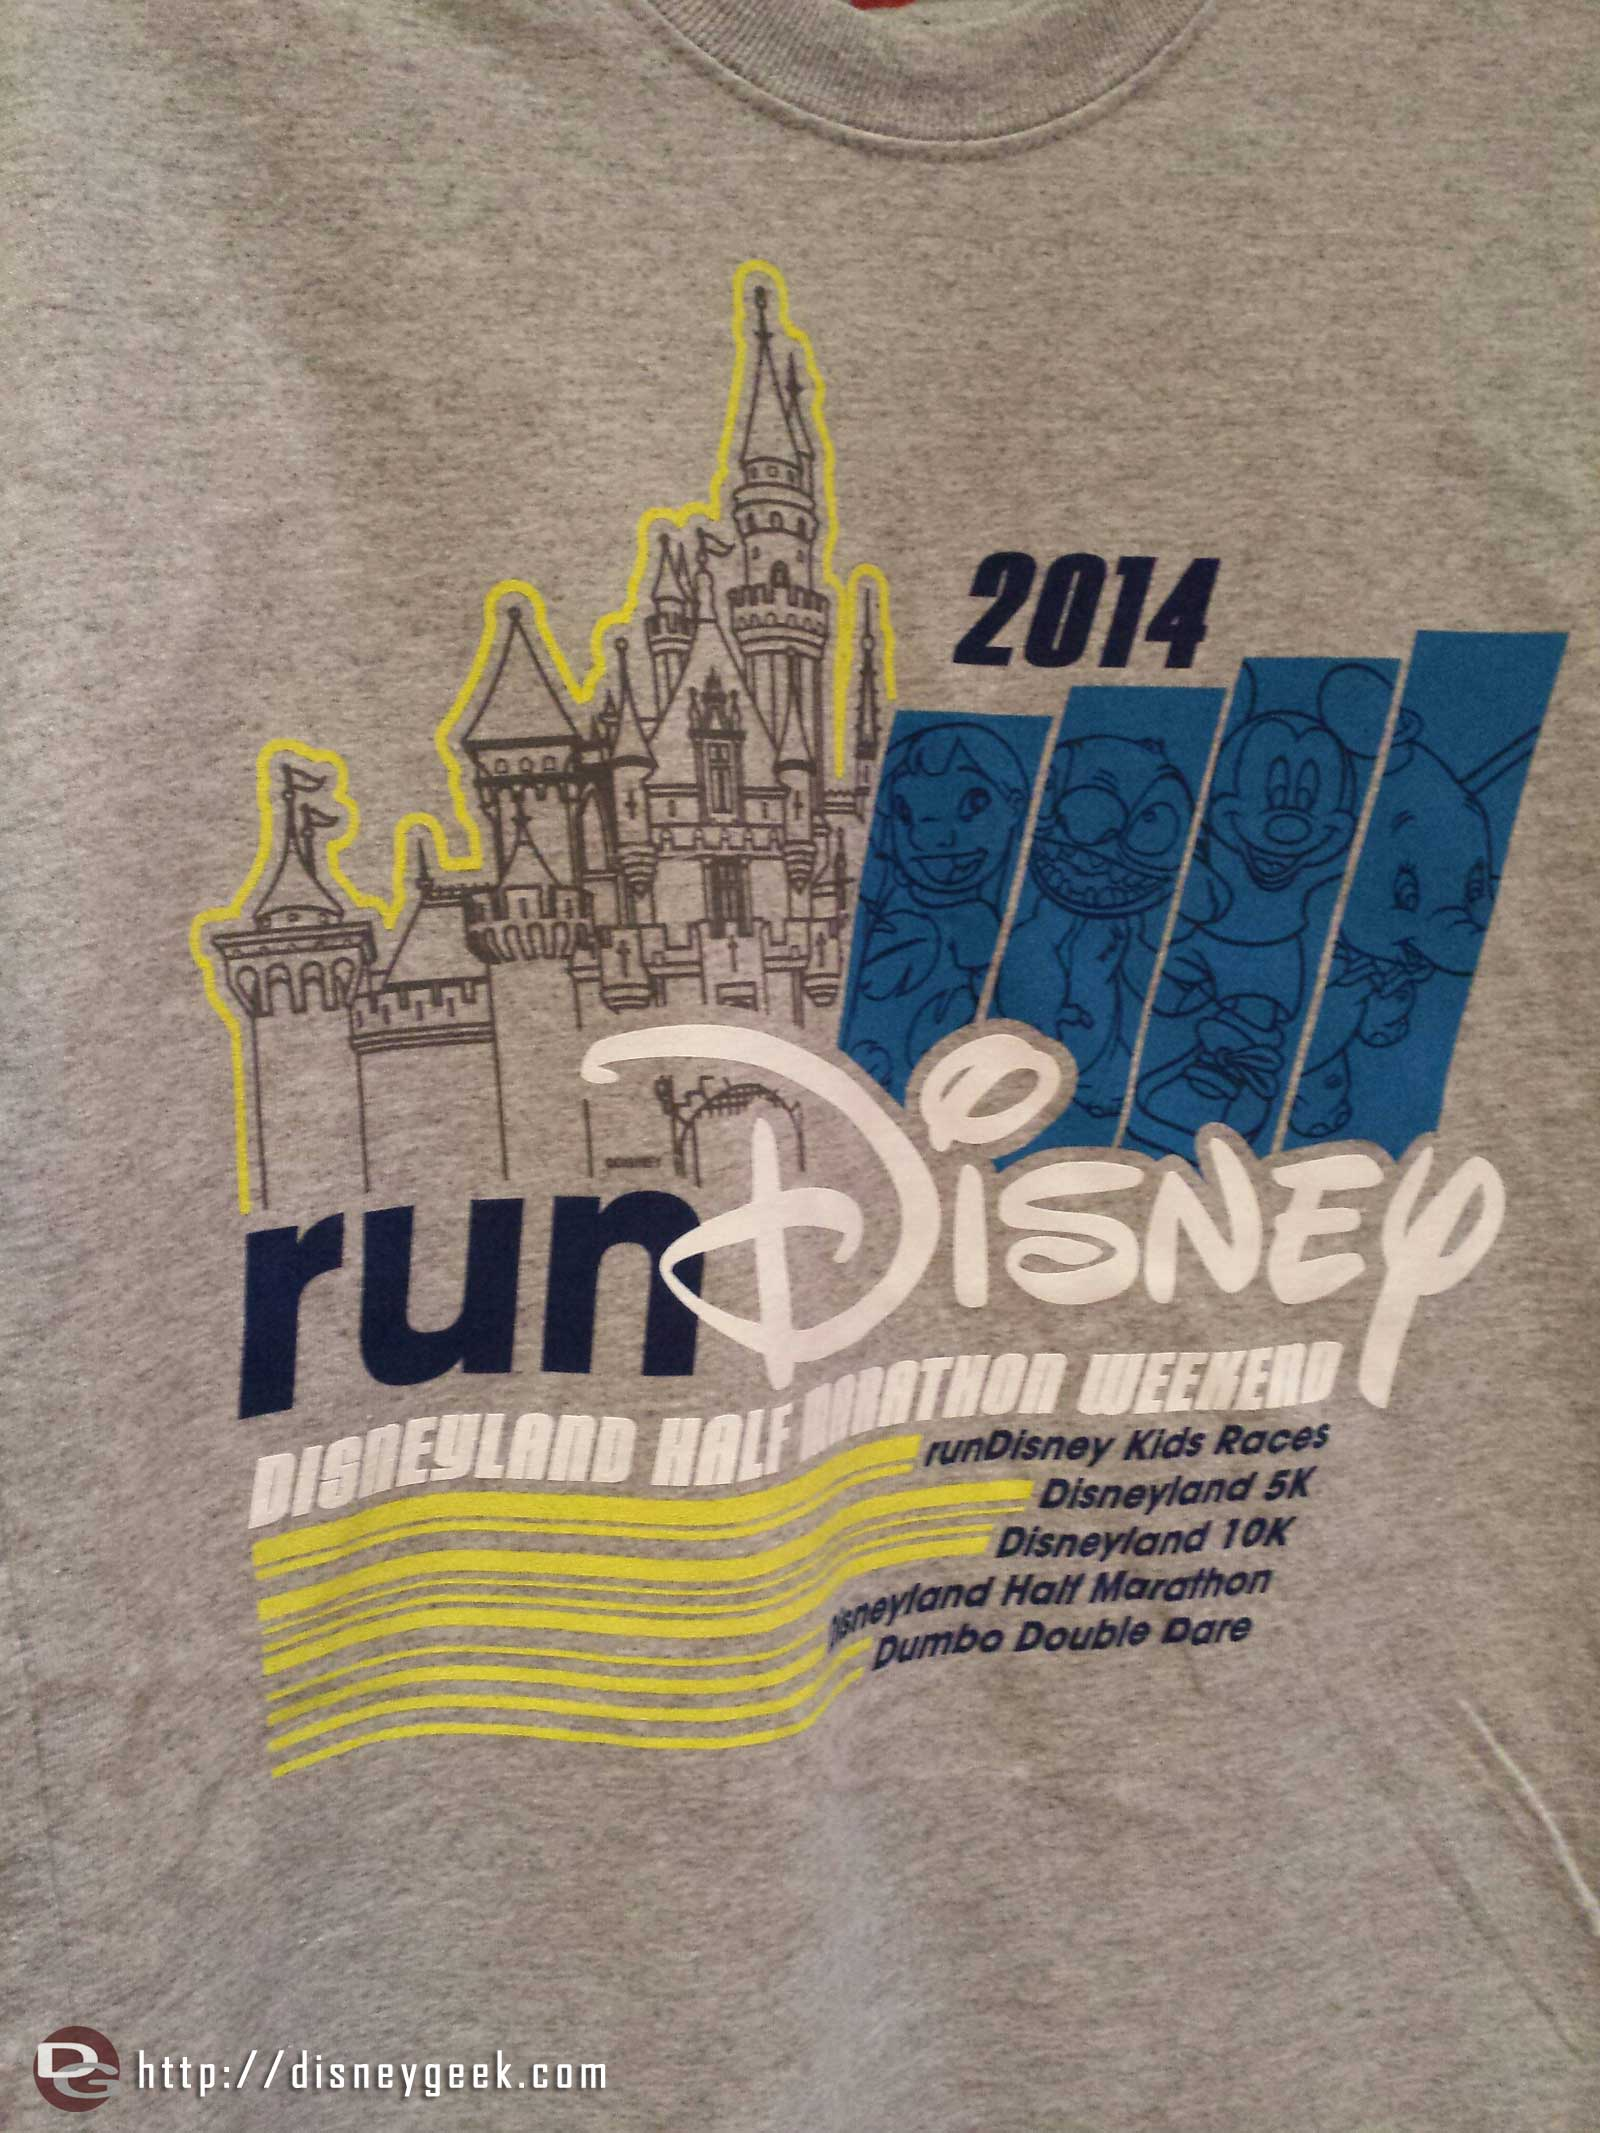 A runDisney shirt listing the races this #Disneyland half marathon weekend